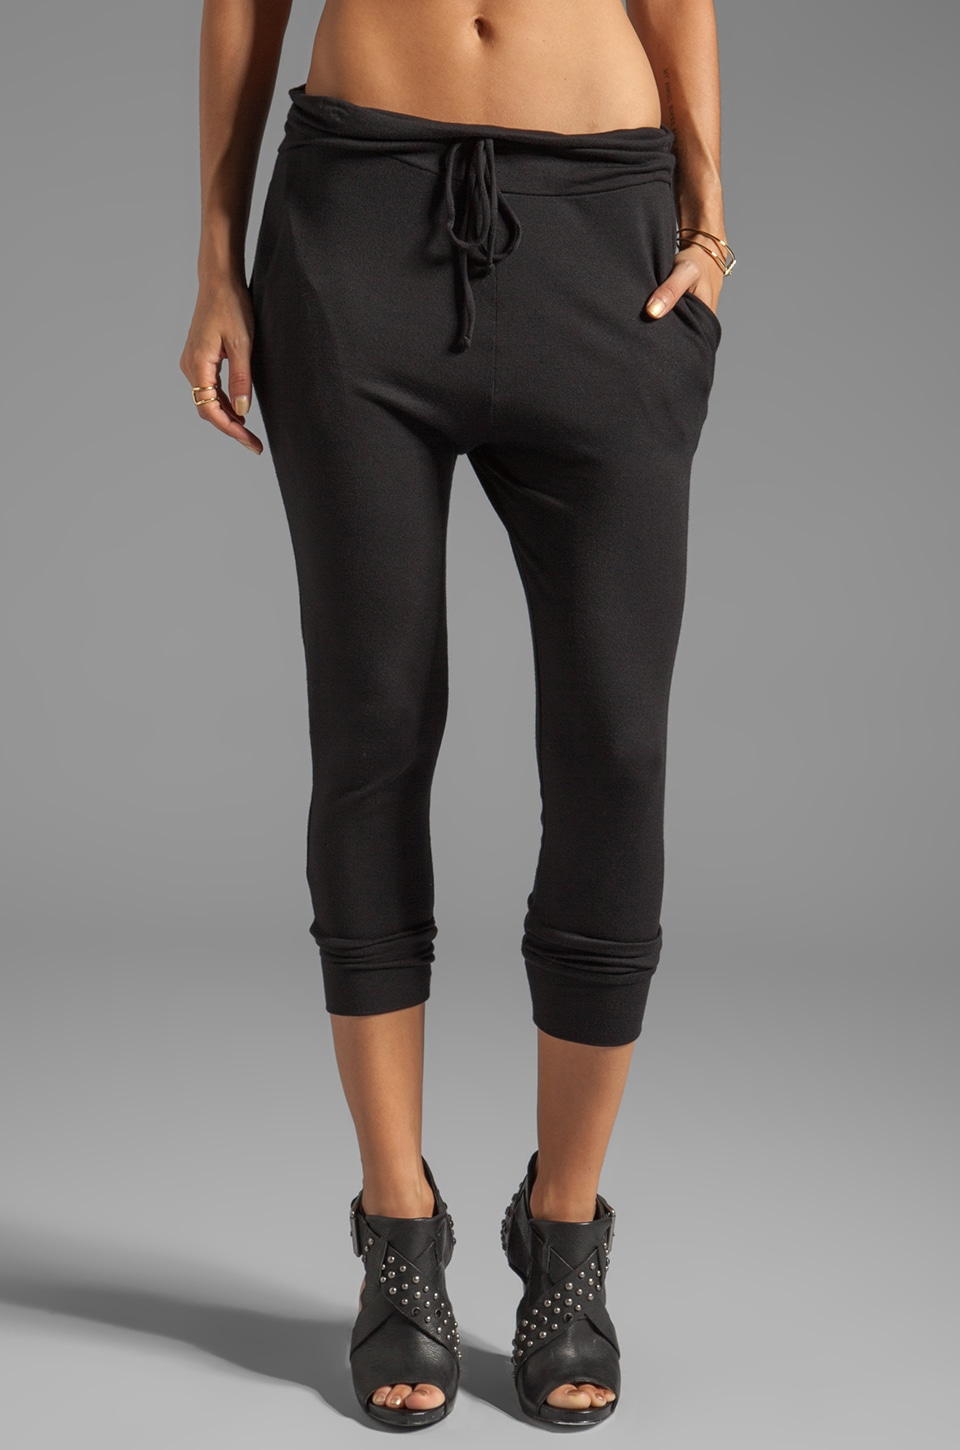 Riller & Fount Bruce Lounge Pant in Black French Terry